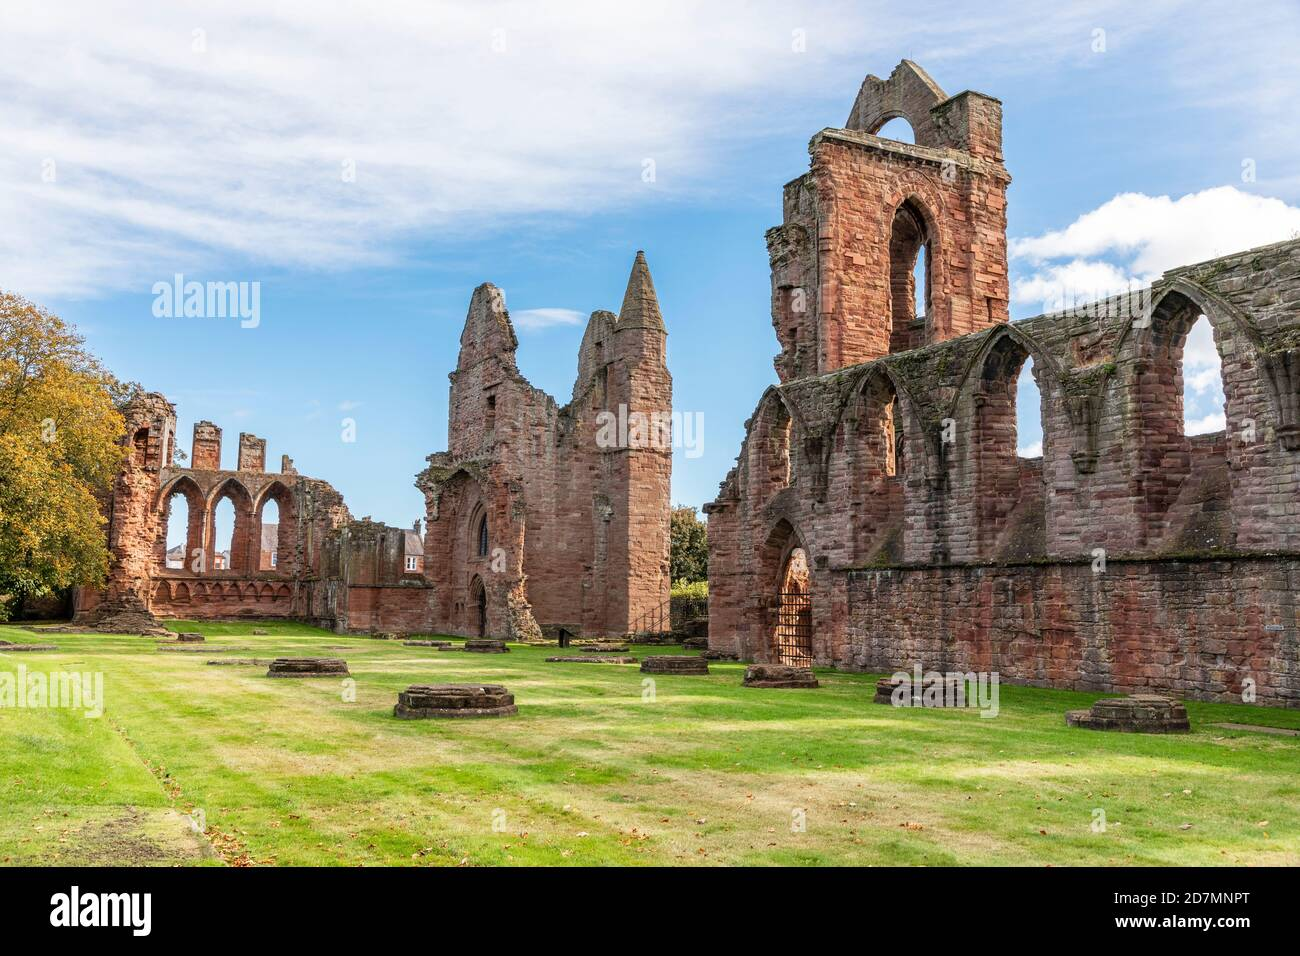 Arbroath Abbey, in the Scottish town of Arbroath, was founded in 1178 by King William the Lion for a group of Tironensian Benedictine monks from Kelso Stock Photo